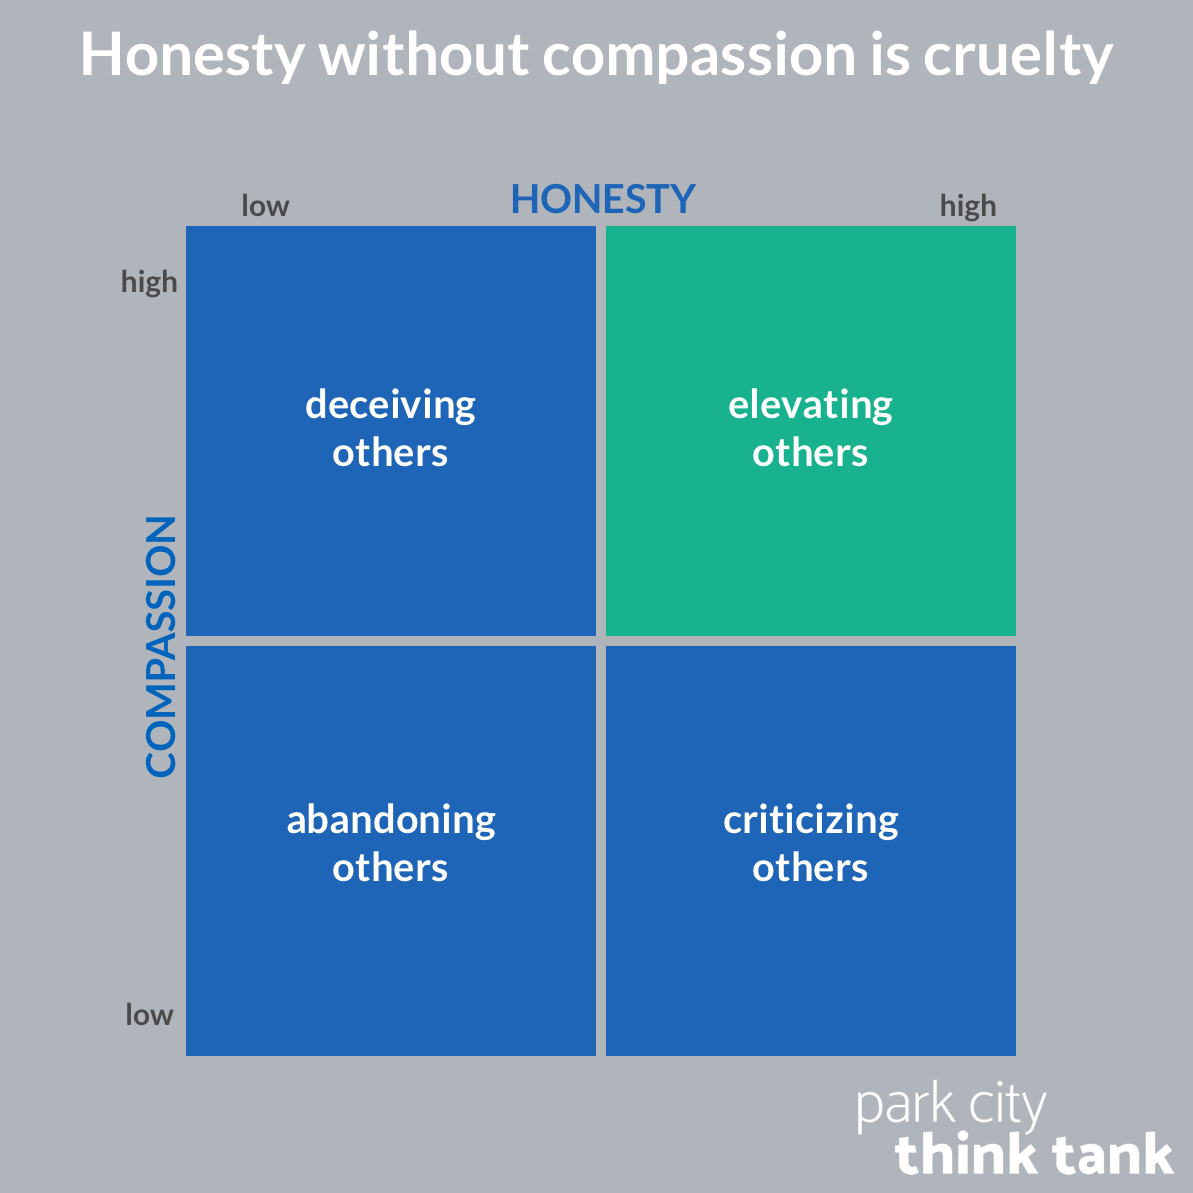 honesty without compassion pctt.jpg